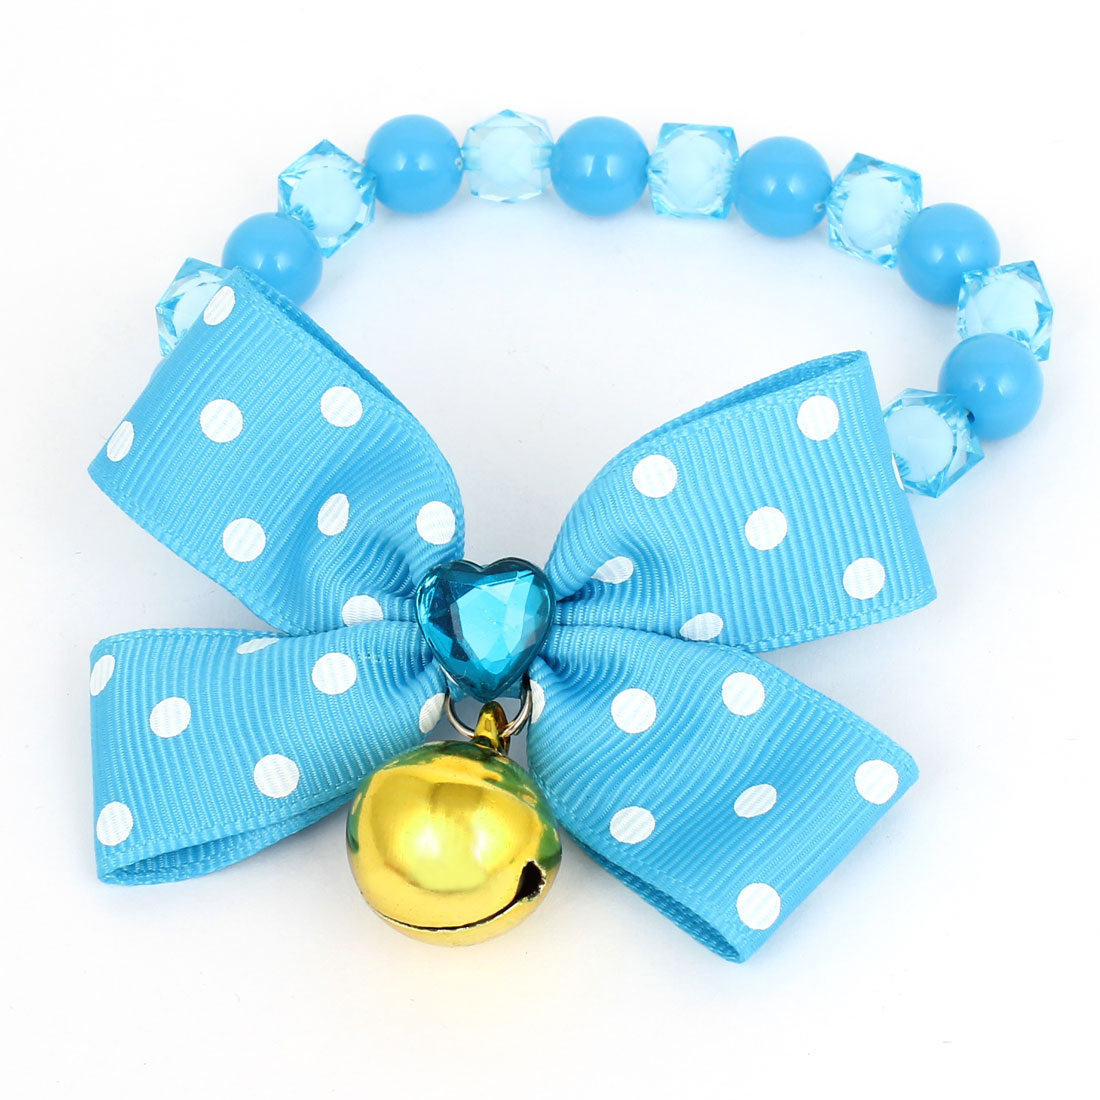 Metal Bell Pendant Bowtie Accent Pet Dog Plastic Beads Collar Necklace Blue XS